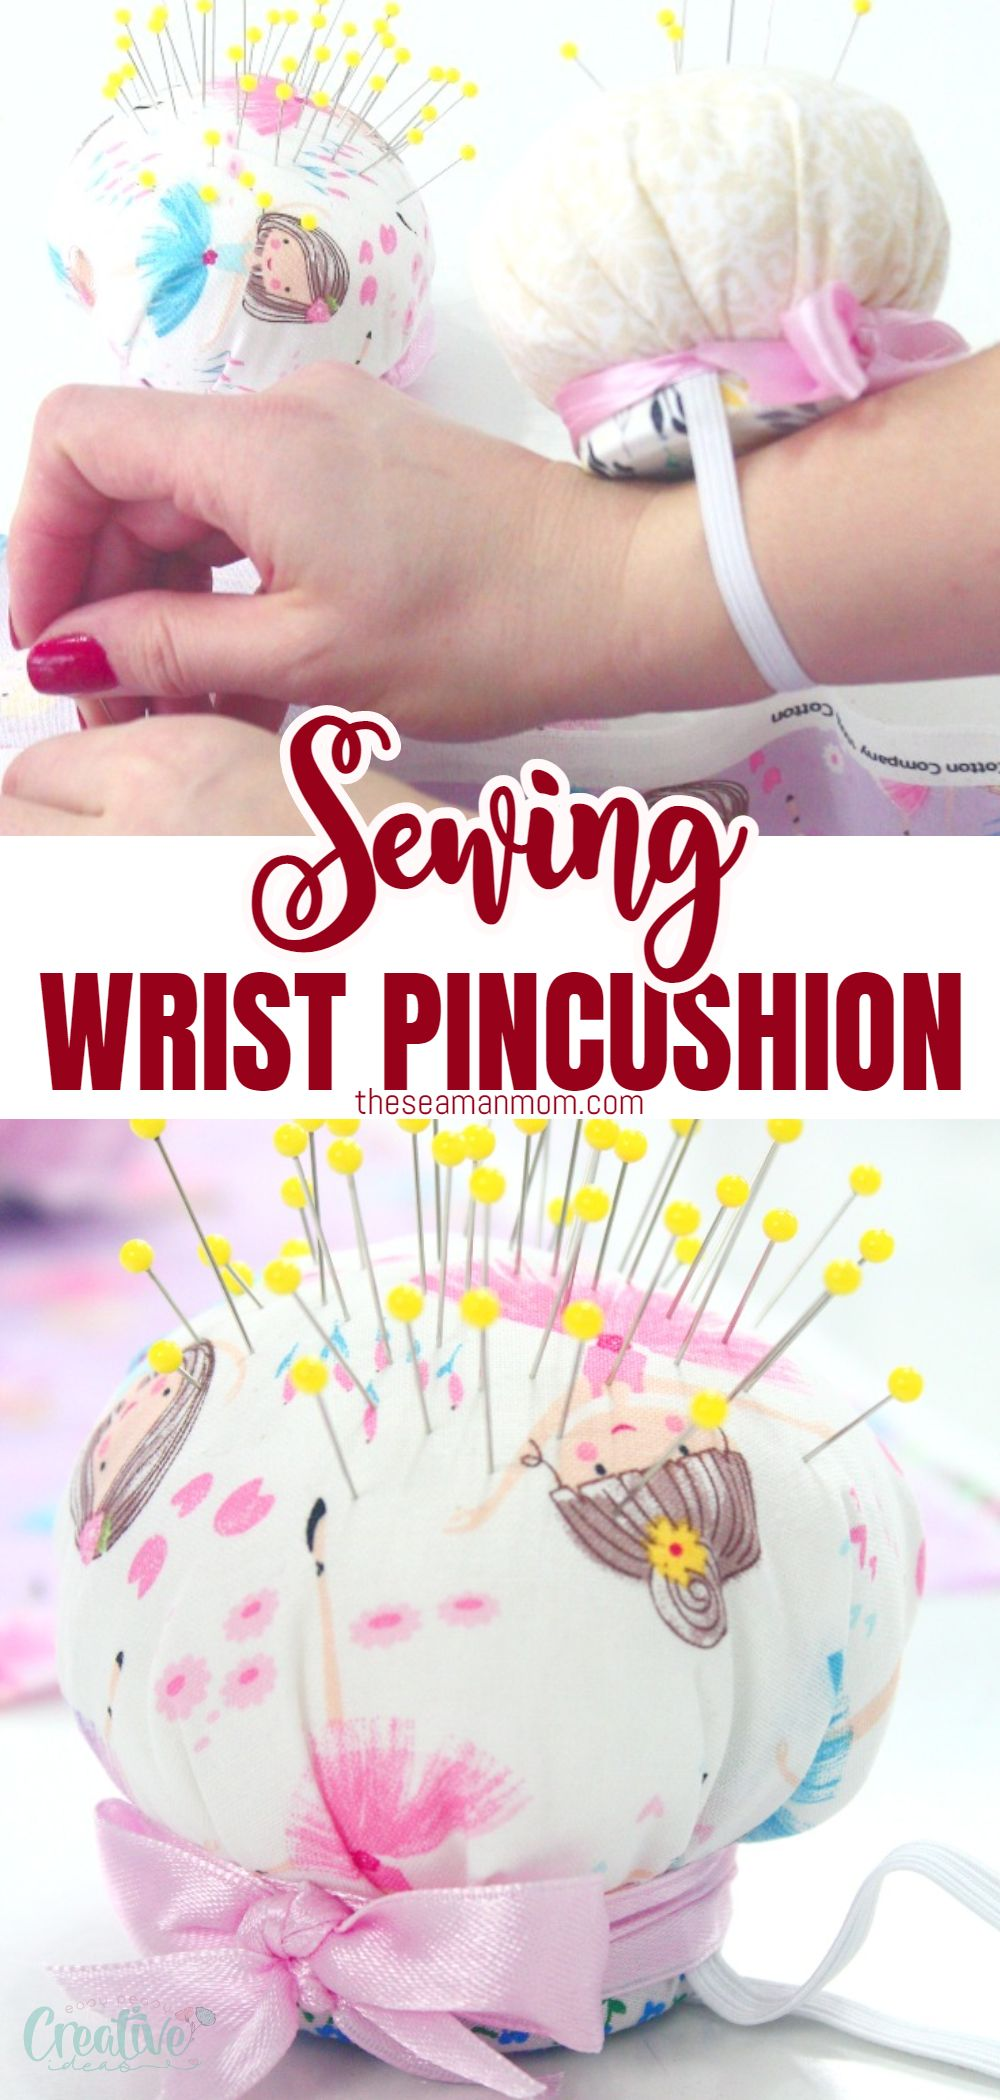 Ever needed a pincushion to put your pins away, but still be on hand? There are lots of pincushions you can place around your sewing area and this time I'm going to show you a super easy way of making a DIY wrist pin cushion. You will always have your cute, useful wrist pincushion on hand, literally! via @petroneagu